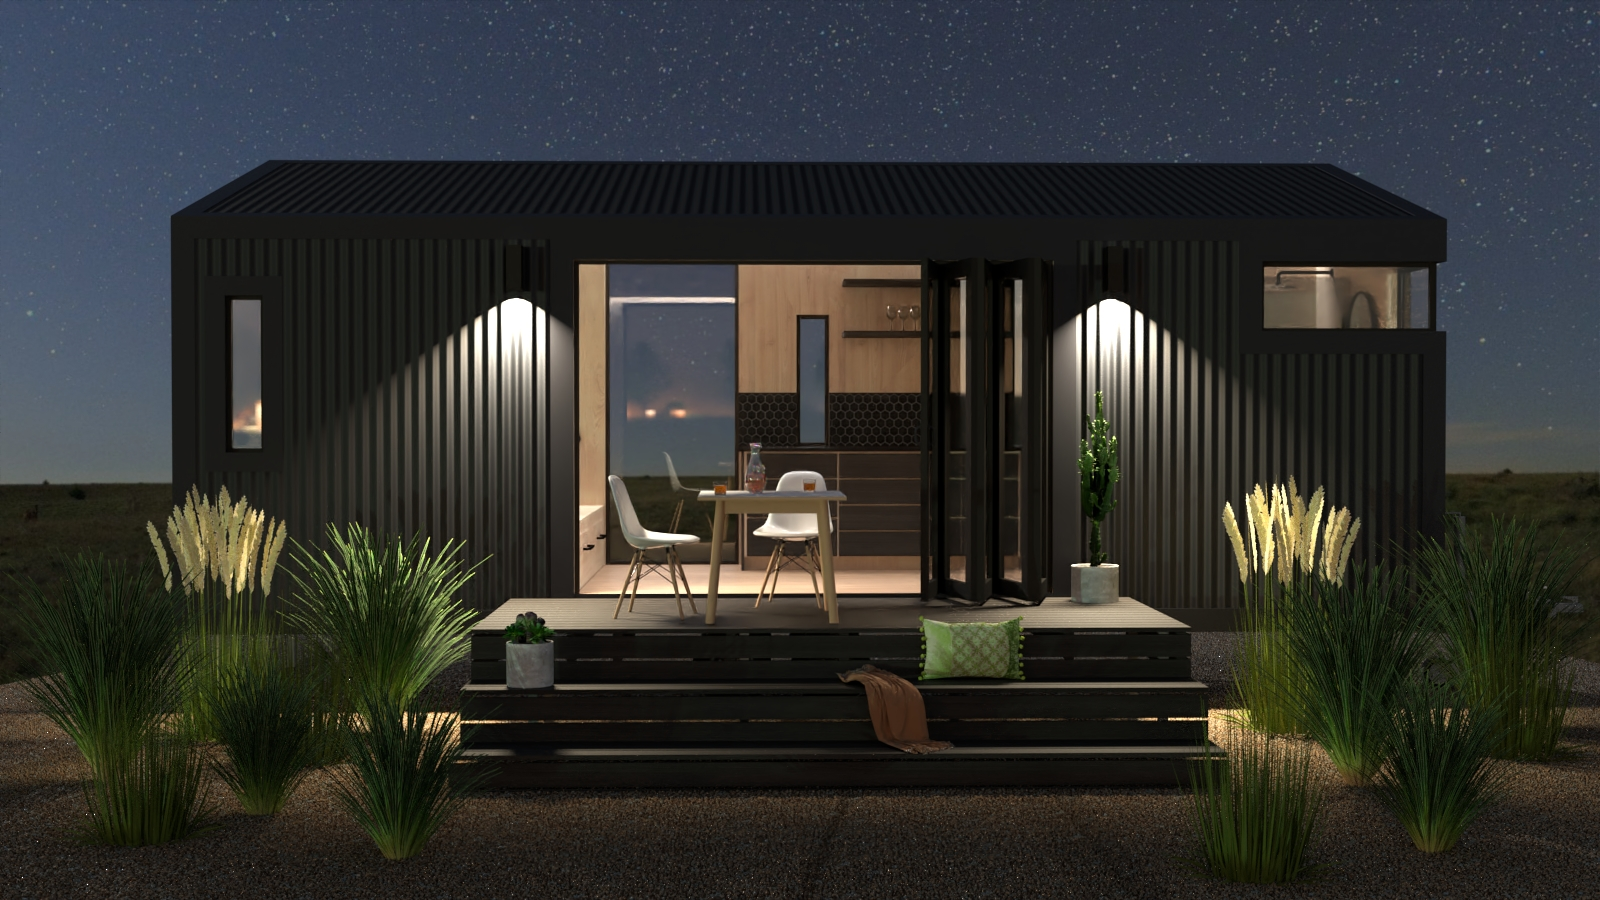 Tinyhome at night